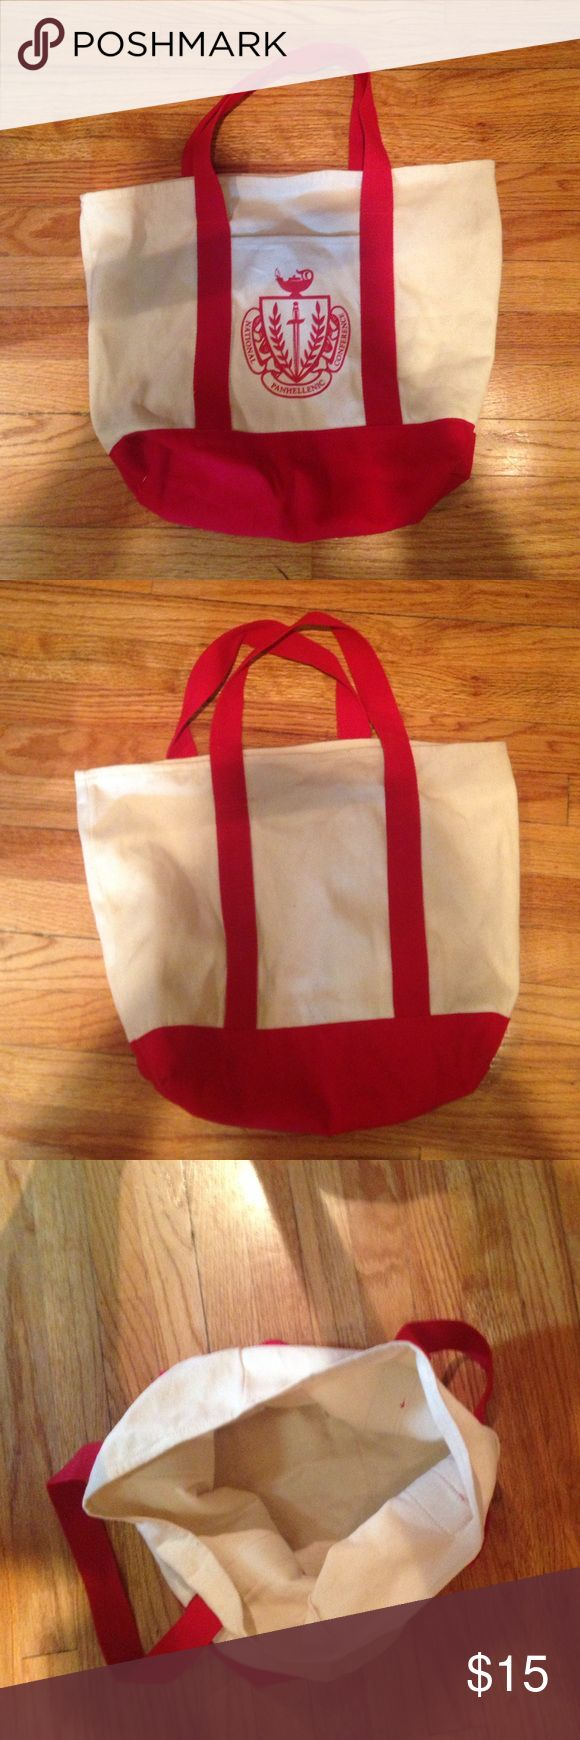 Panhellenic Sorority Tote Large Panhellenic Sorority Tote. Great for Greek unity! I barely used mine! It was for a recruitment guide gift. Would be great for traveling or carrying books. Or anything large! Bags Totes